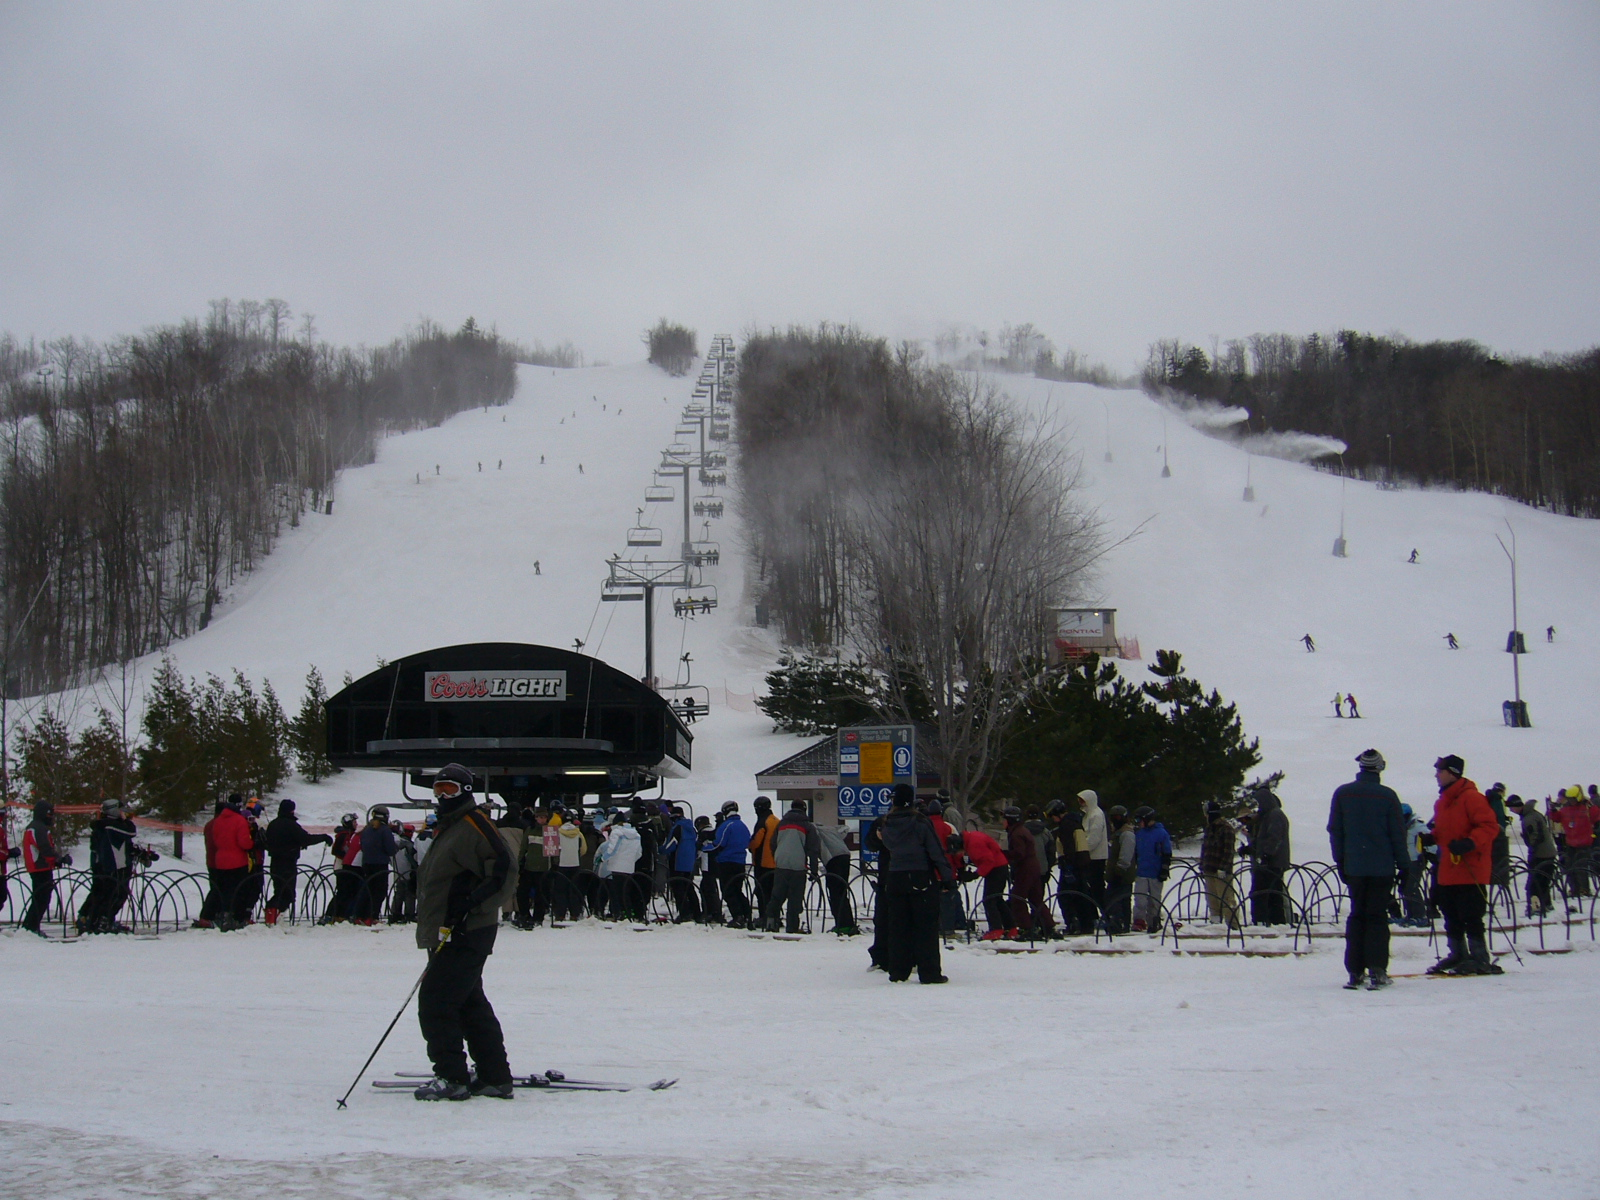 blue mountain (ski resort) - wikipedia